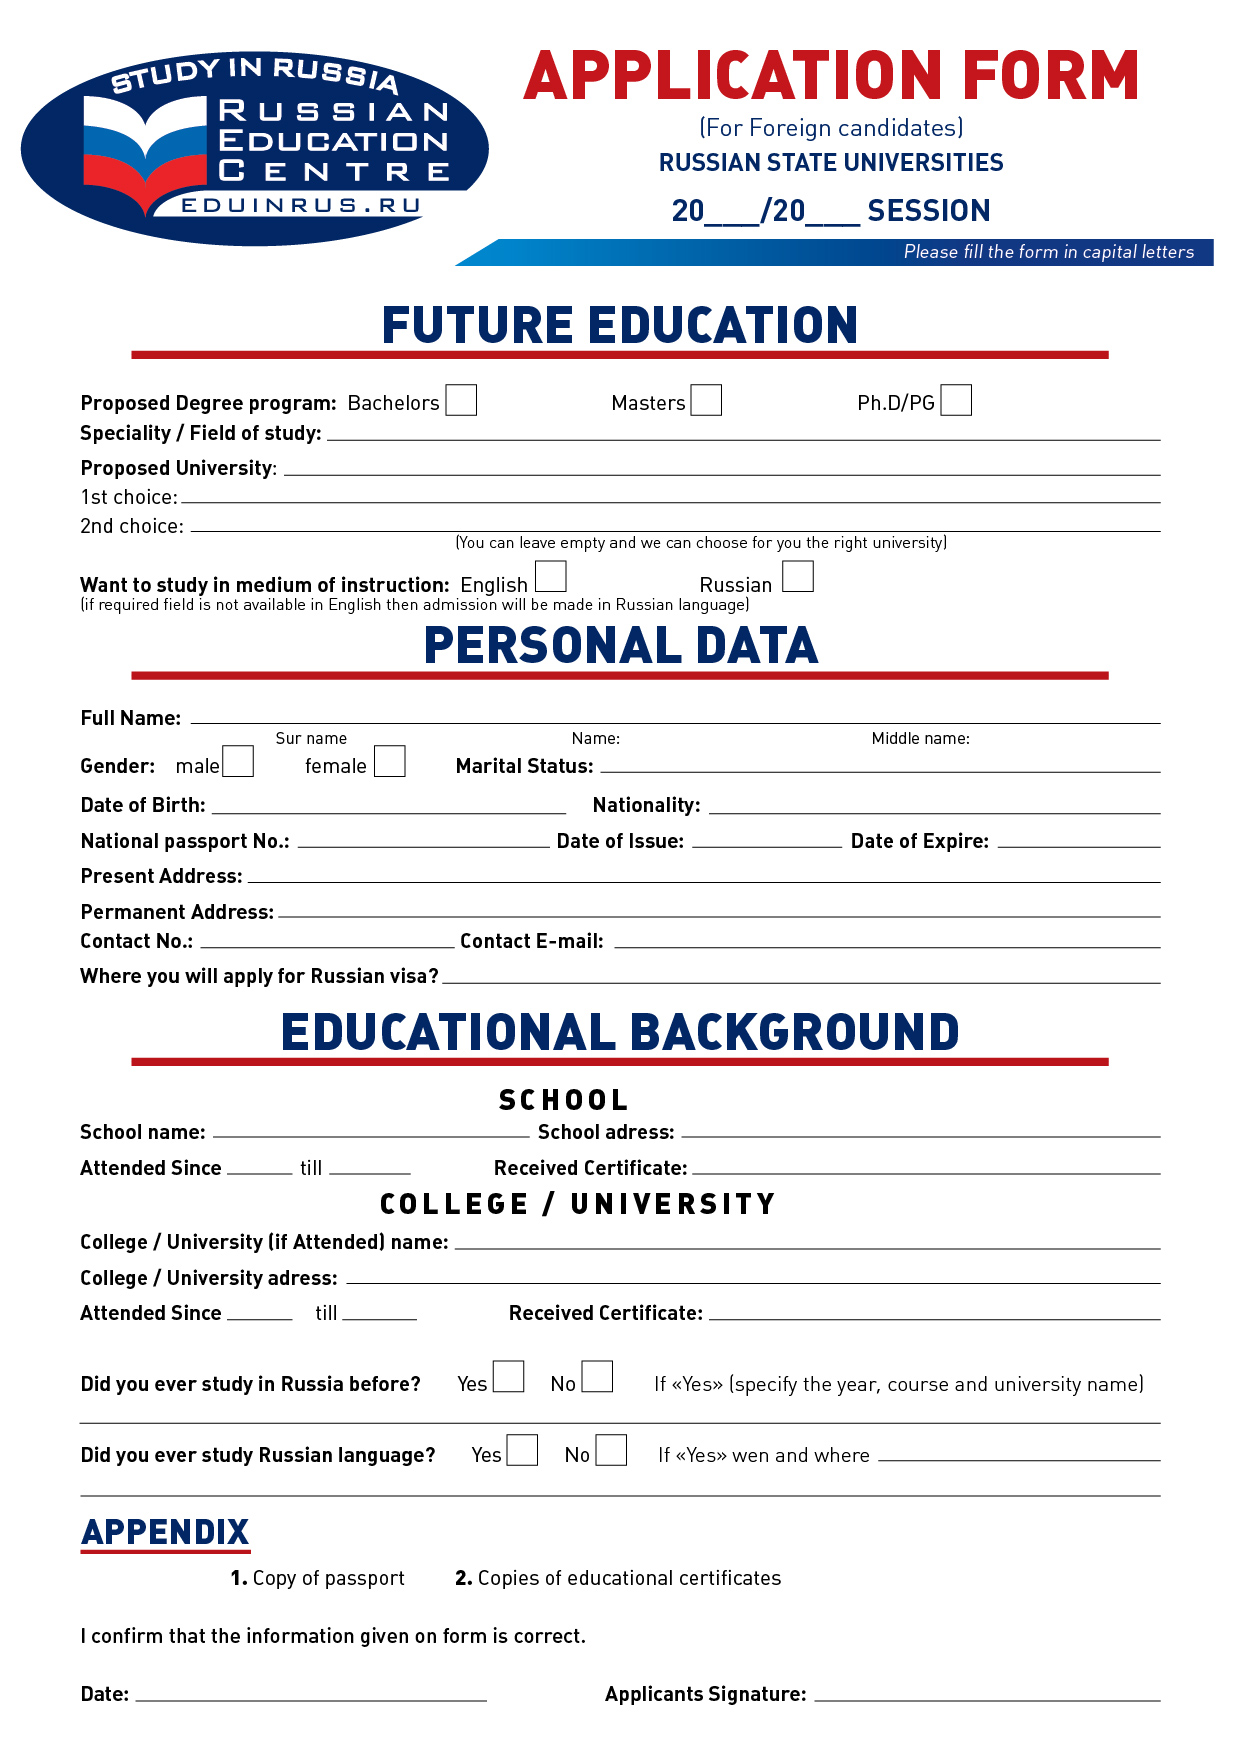 Download Application form for Study in Russia | Admission Center for on request information form, application to graduate, graduation application, general information form, add/drop form, letters of recommendation form, admissions department, application form template.pdf, course evaluation form, housing application form, application form format, withdrawal form, application form online, registration form, application for graduation form, student application form, scholarship application form, contact us form, college job application form, advanced diploma in gis applications, transcript request form, high school transcript request form, application for friends with benefits form, application for transfer credit,